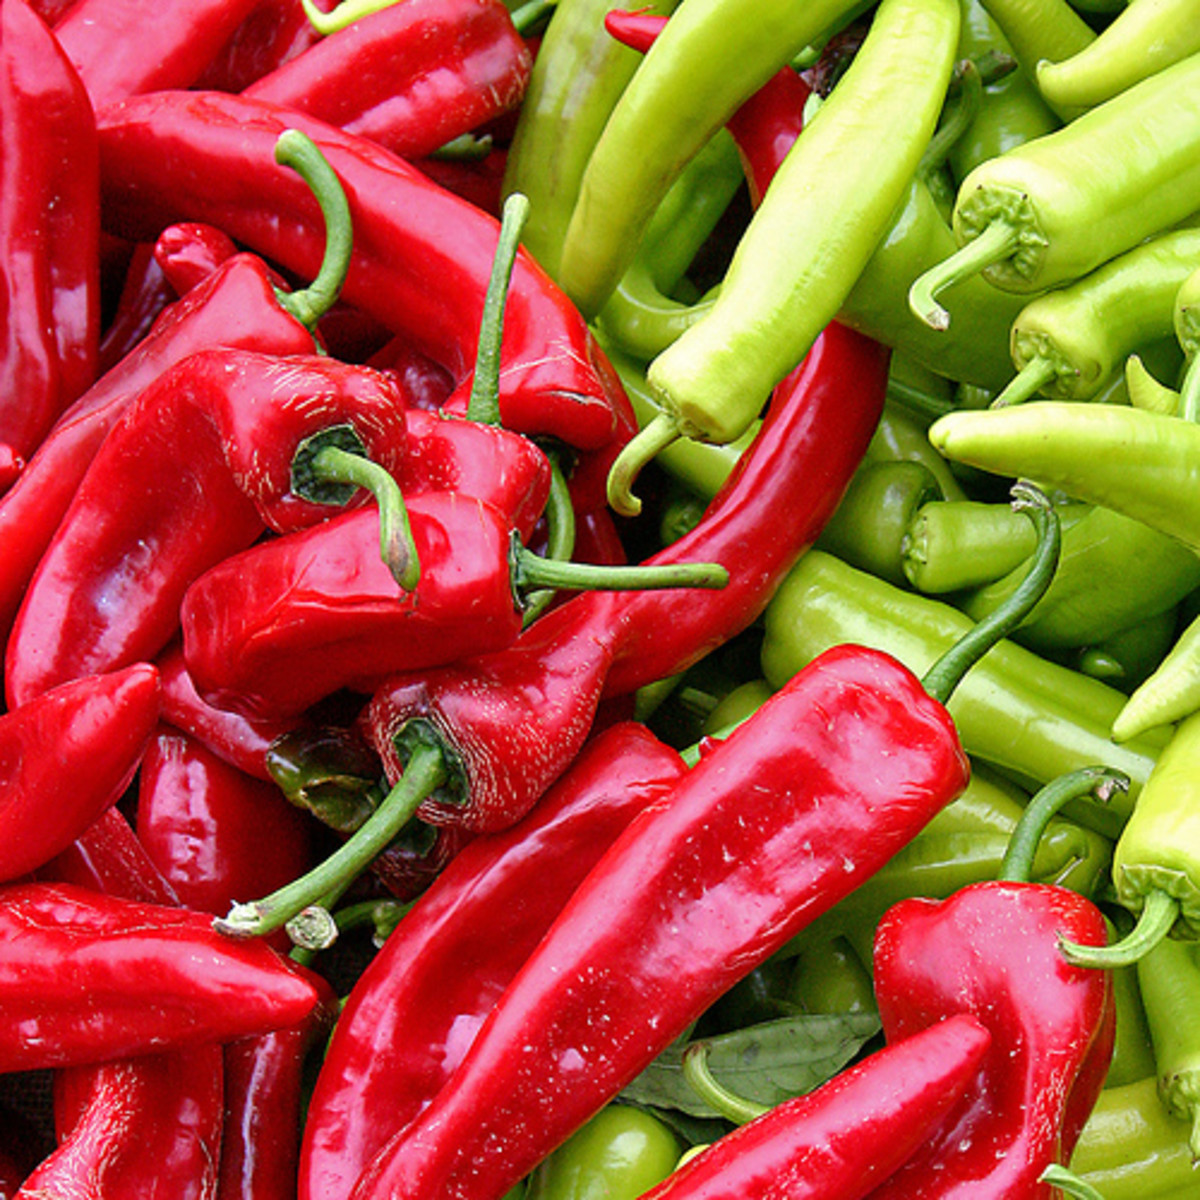 The heat from chili pepper can soothe osteoarthritic pain.